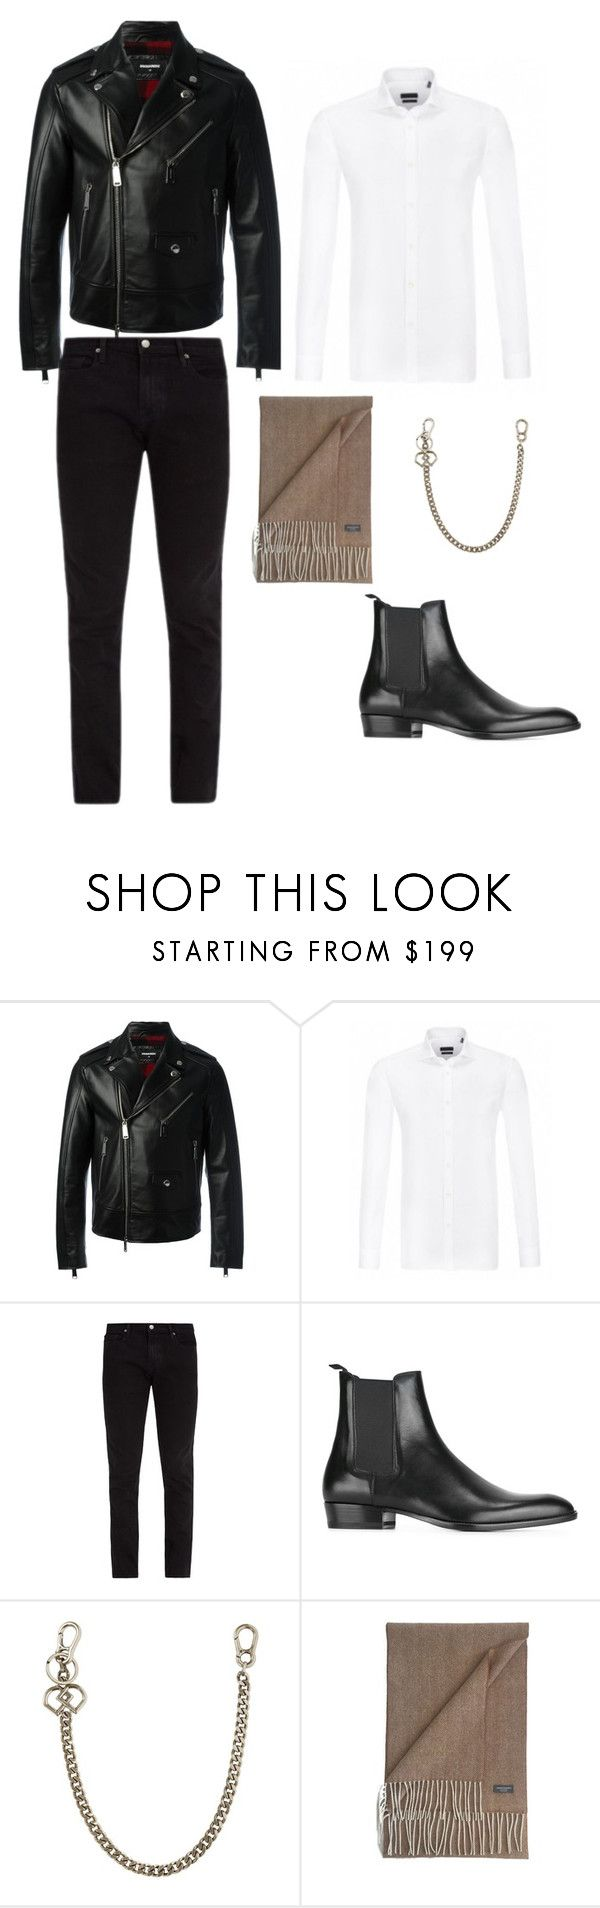 """Leather biker outfit"" by eda-kunics on Polyvore featuring Dsquared2, Frame, Yves Saint Laurent, James Cavolini, men's fashion and menswear"